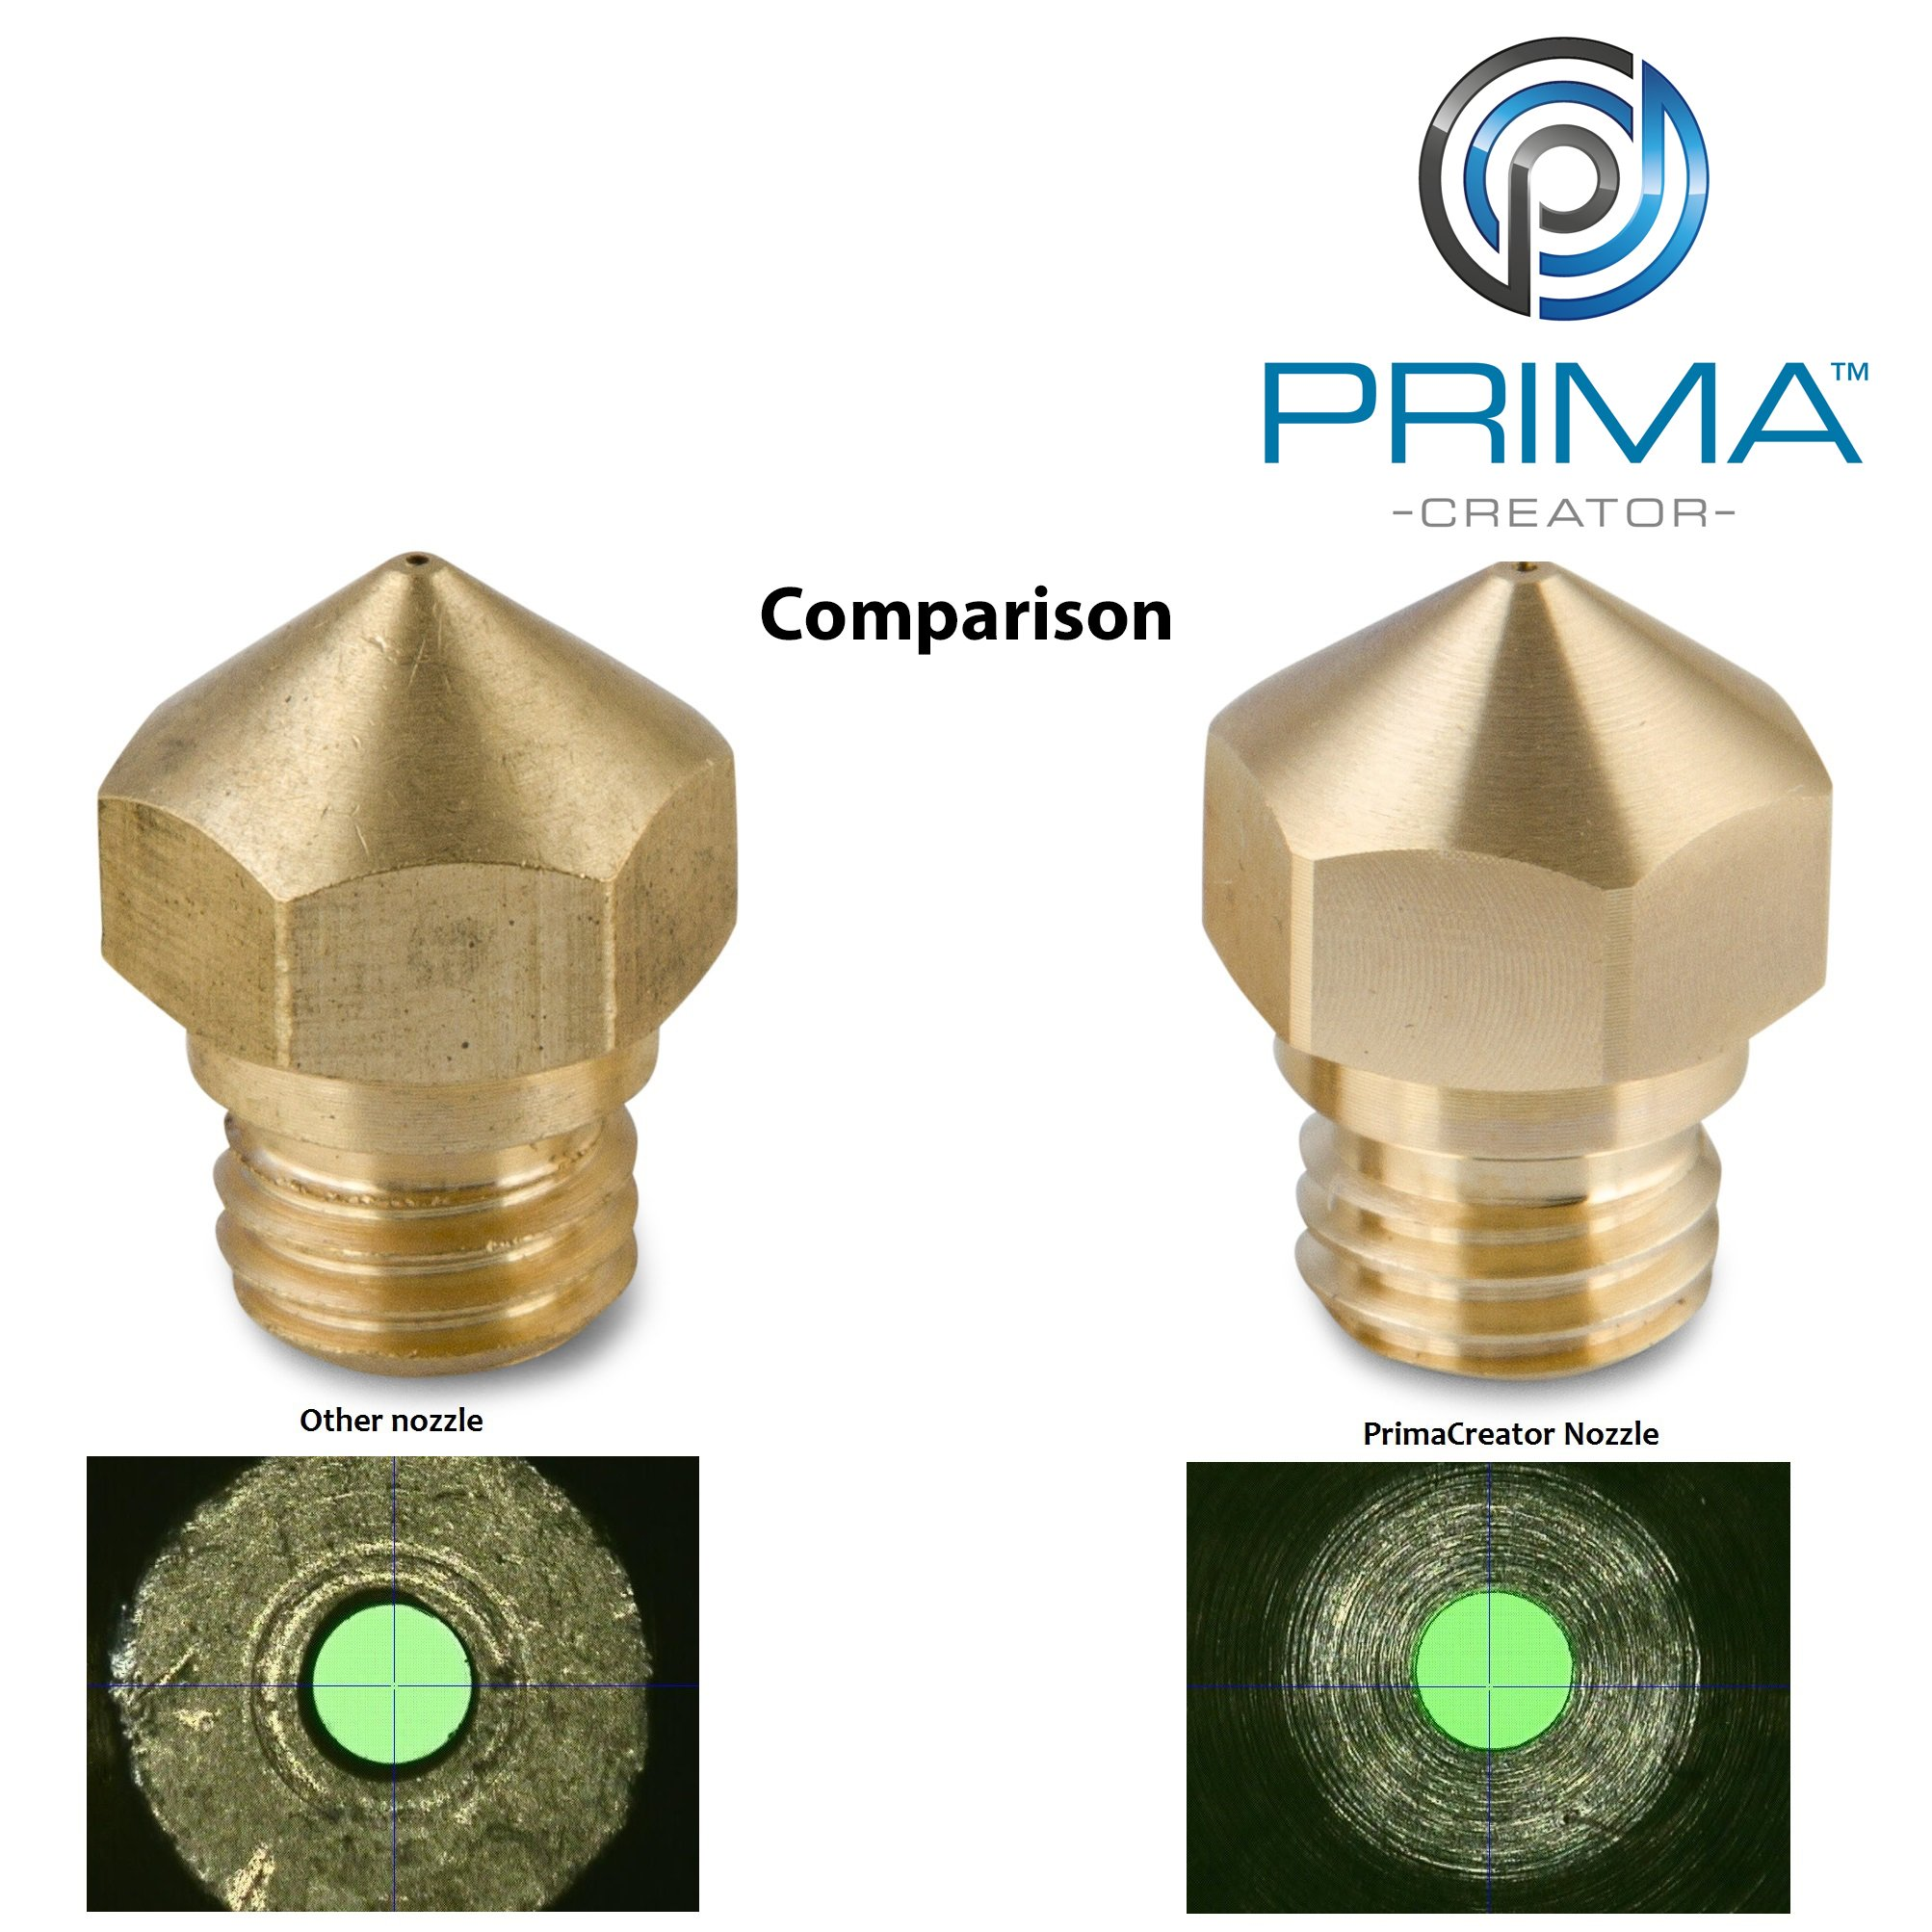 PrimaCreator PC-NSP-04Hx1-MK10 MK10 Hardened Steel Nozzle 0,4 mm